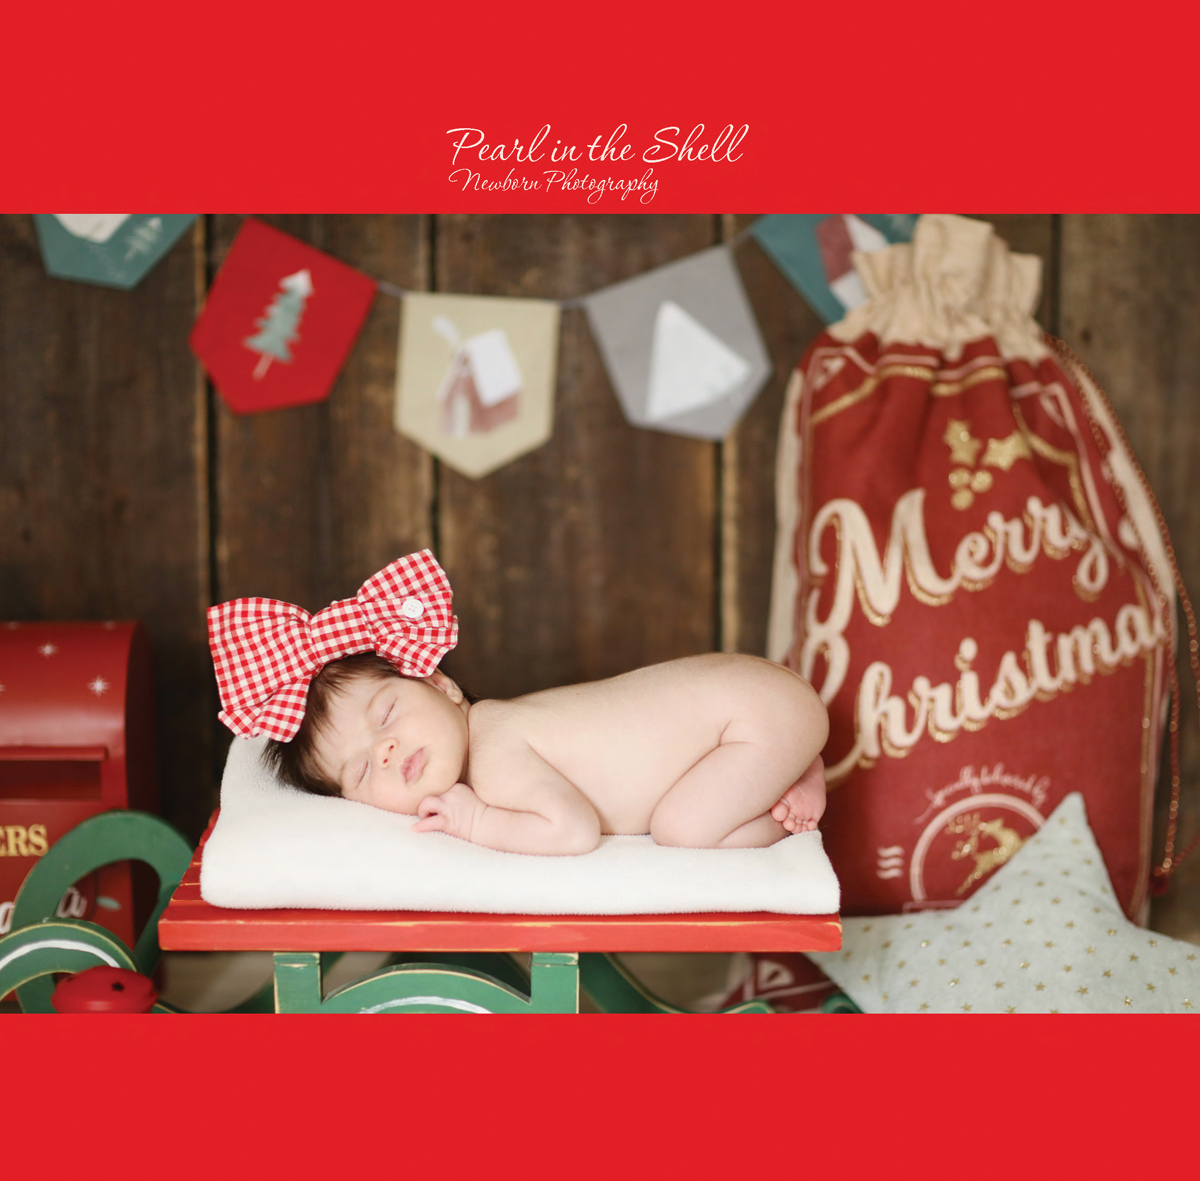 Pearl-in-the-Shell-Calendar-2020 (26)